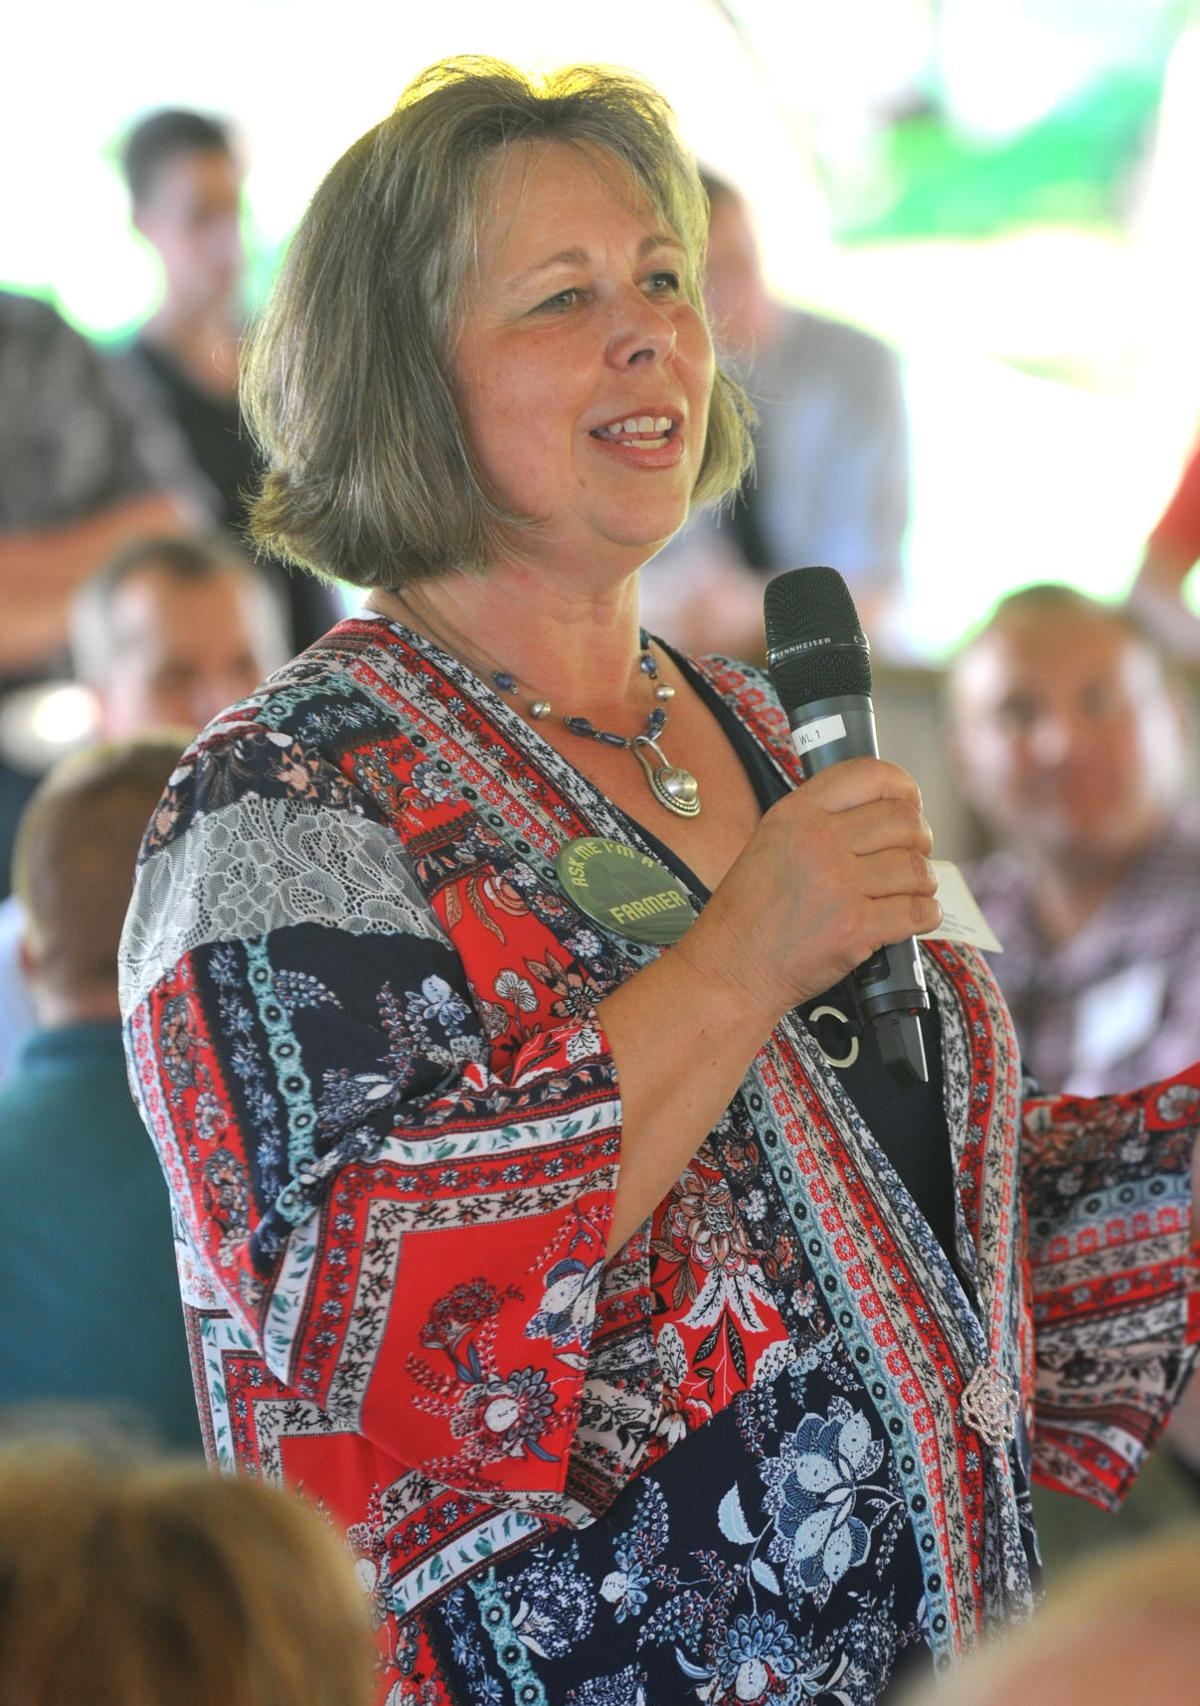 Friday on the farm: Event showcases local food, ag issues